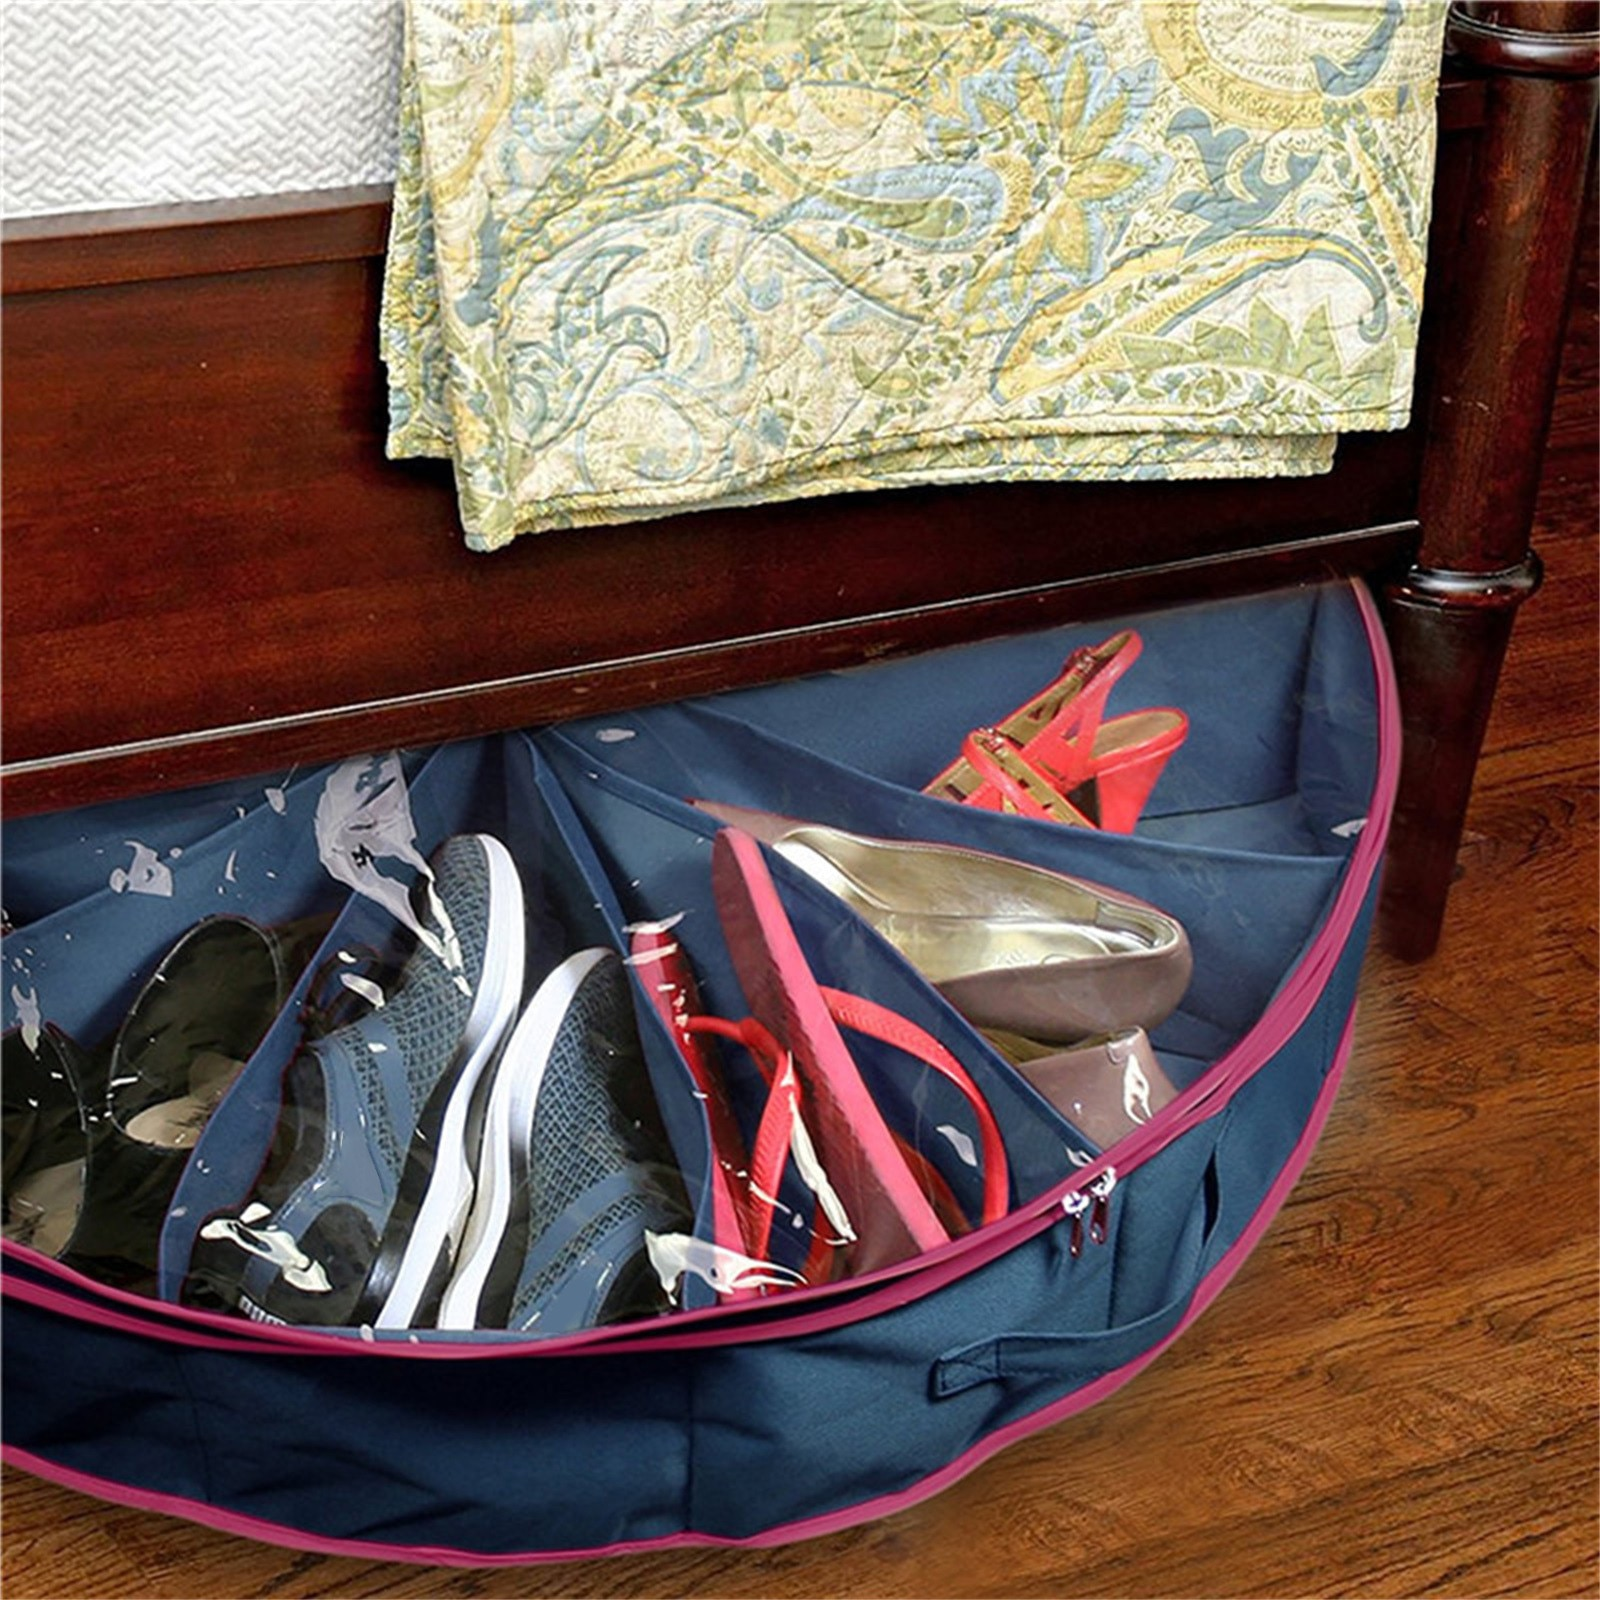 Home interior multifunctional storage box environmental protection storage bag foldable multi compartment home decoration sundry Manager